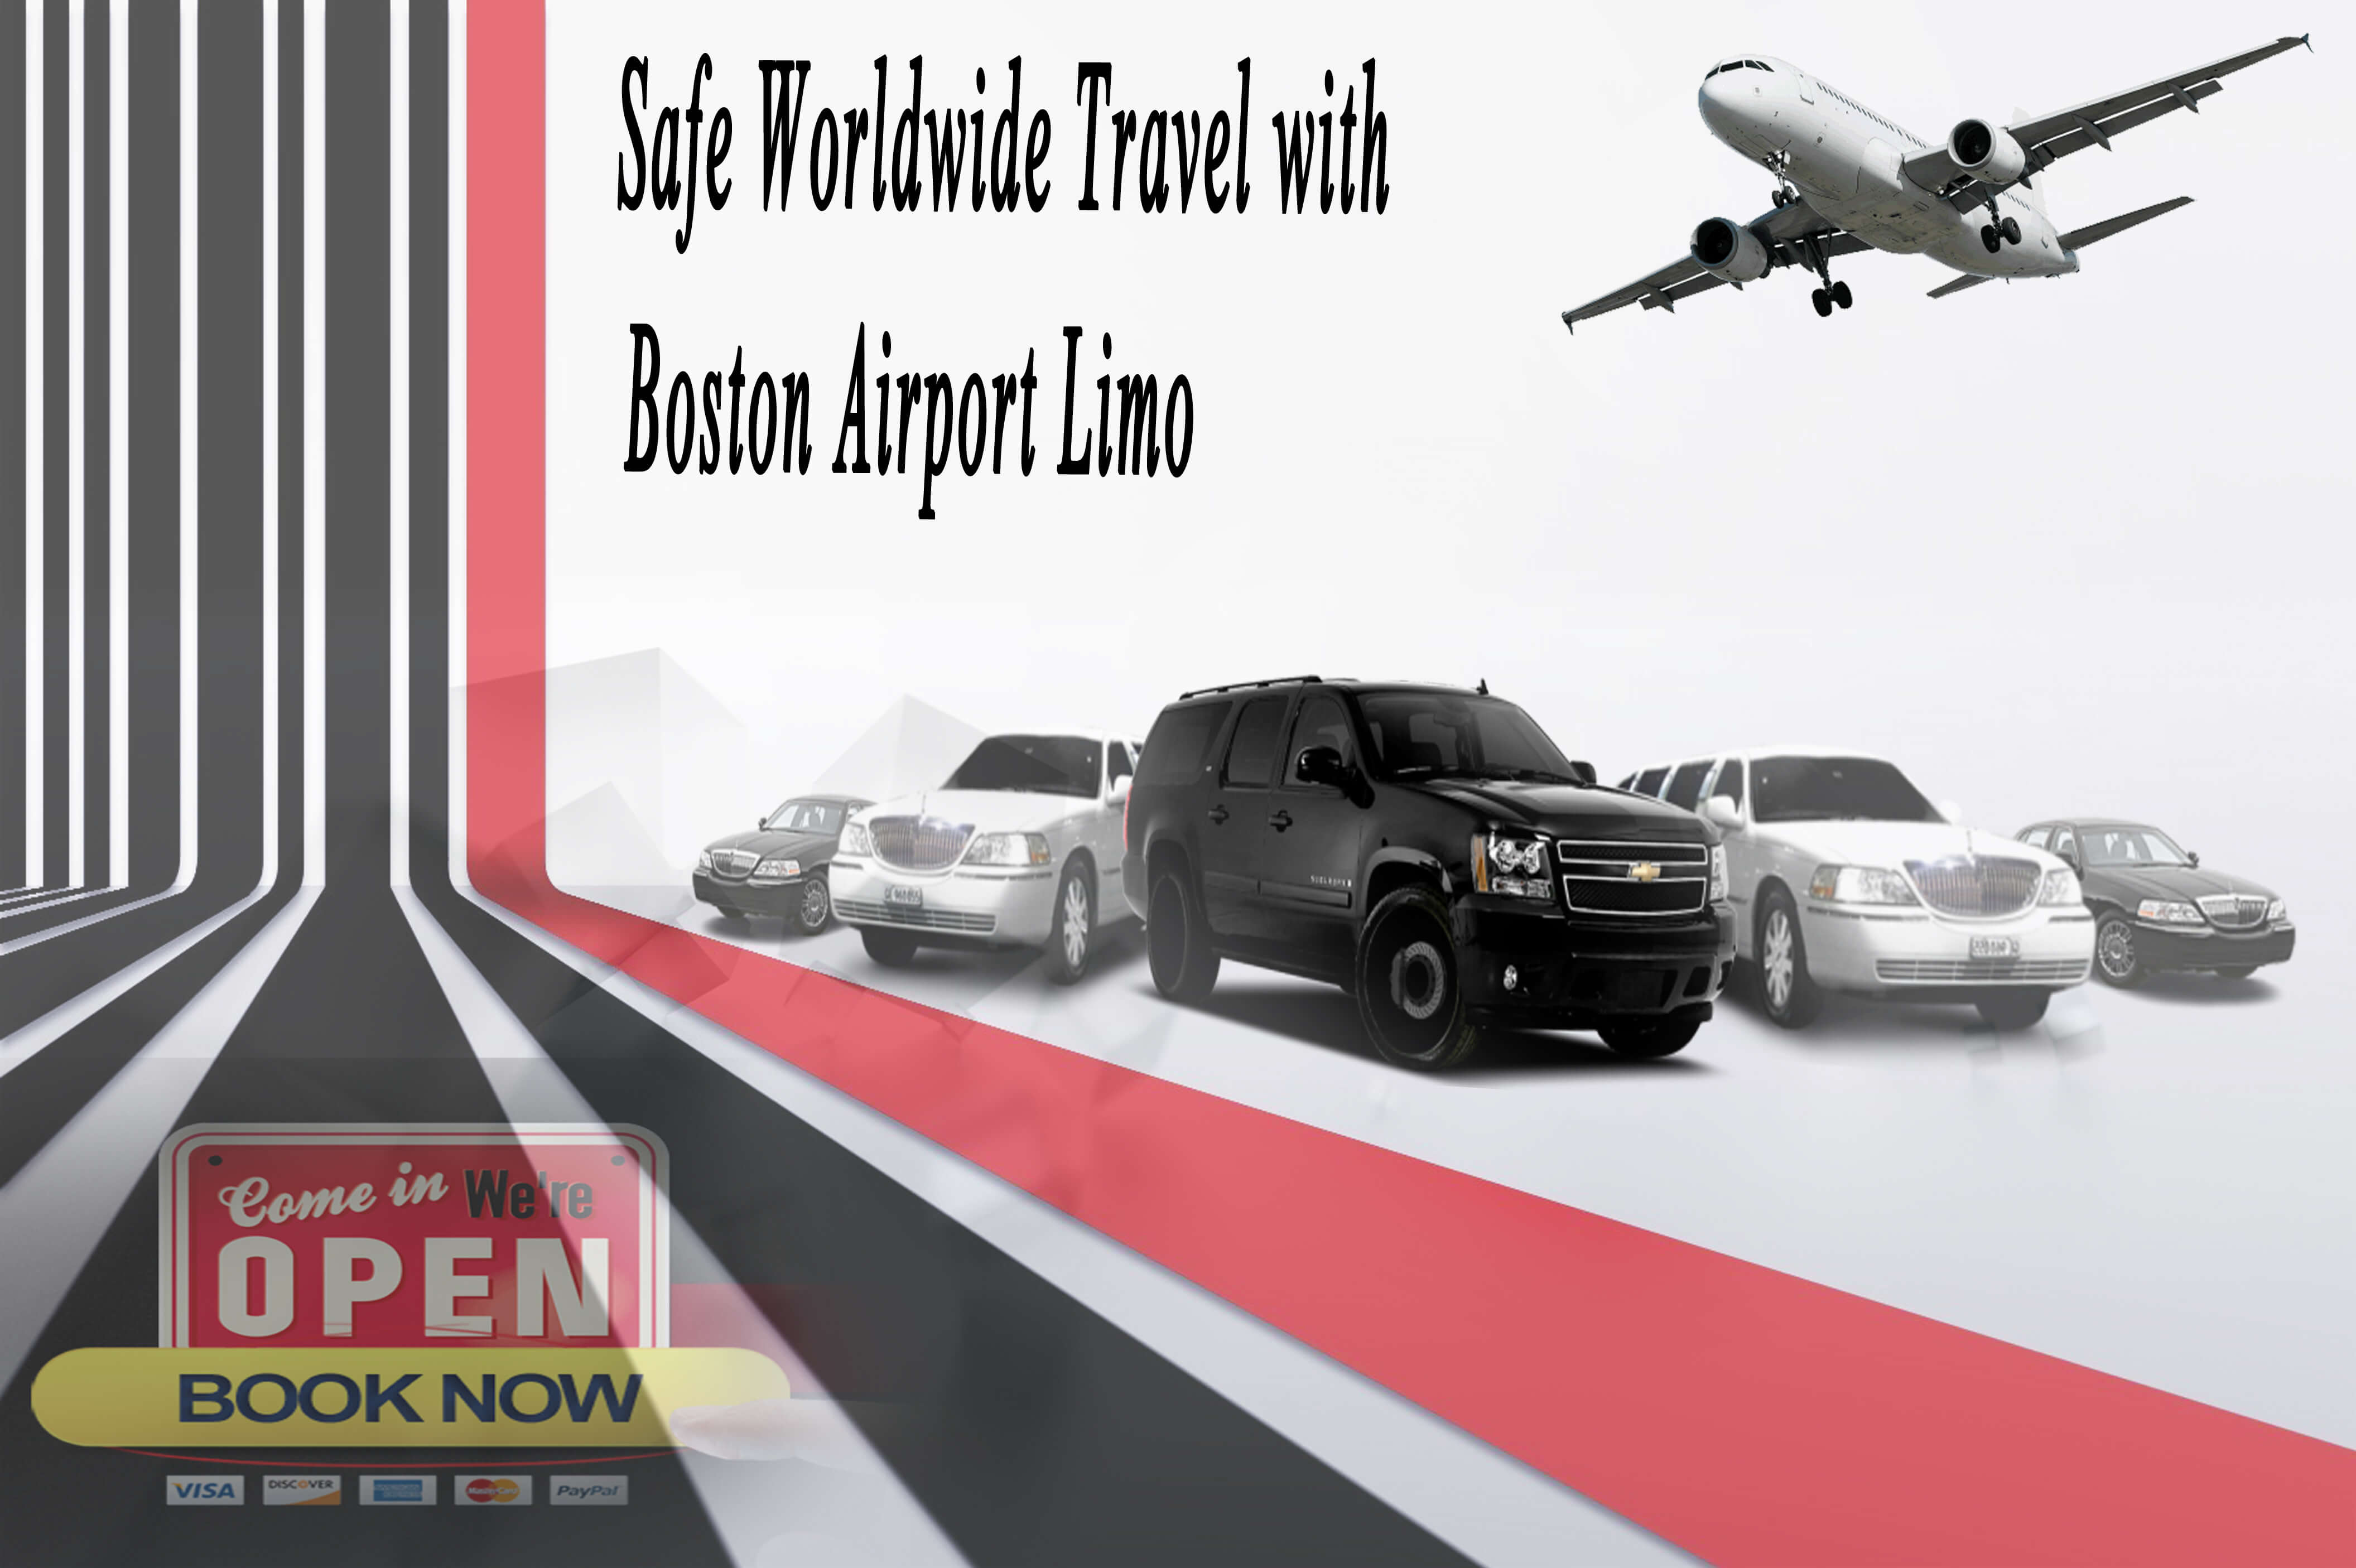 Boston-Airport-limo Safe Worldwide Travel with Boston Airport Limo